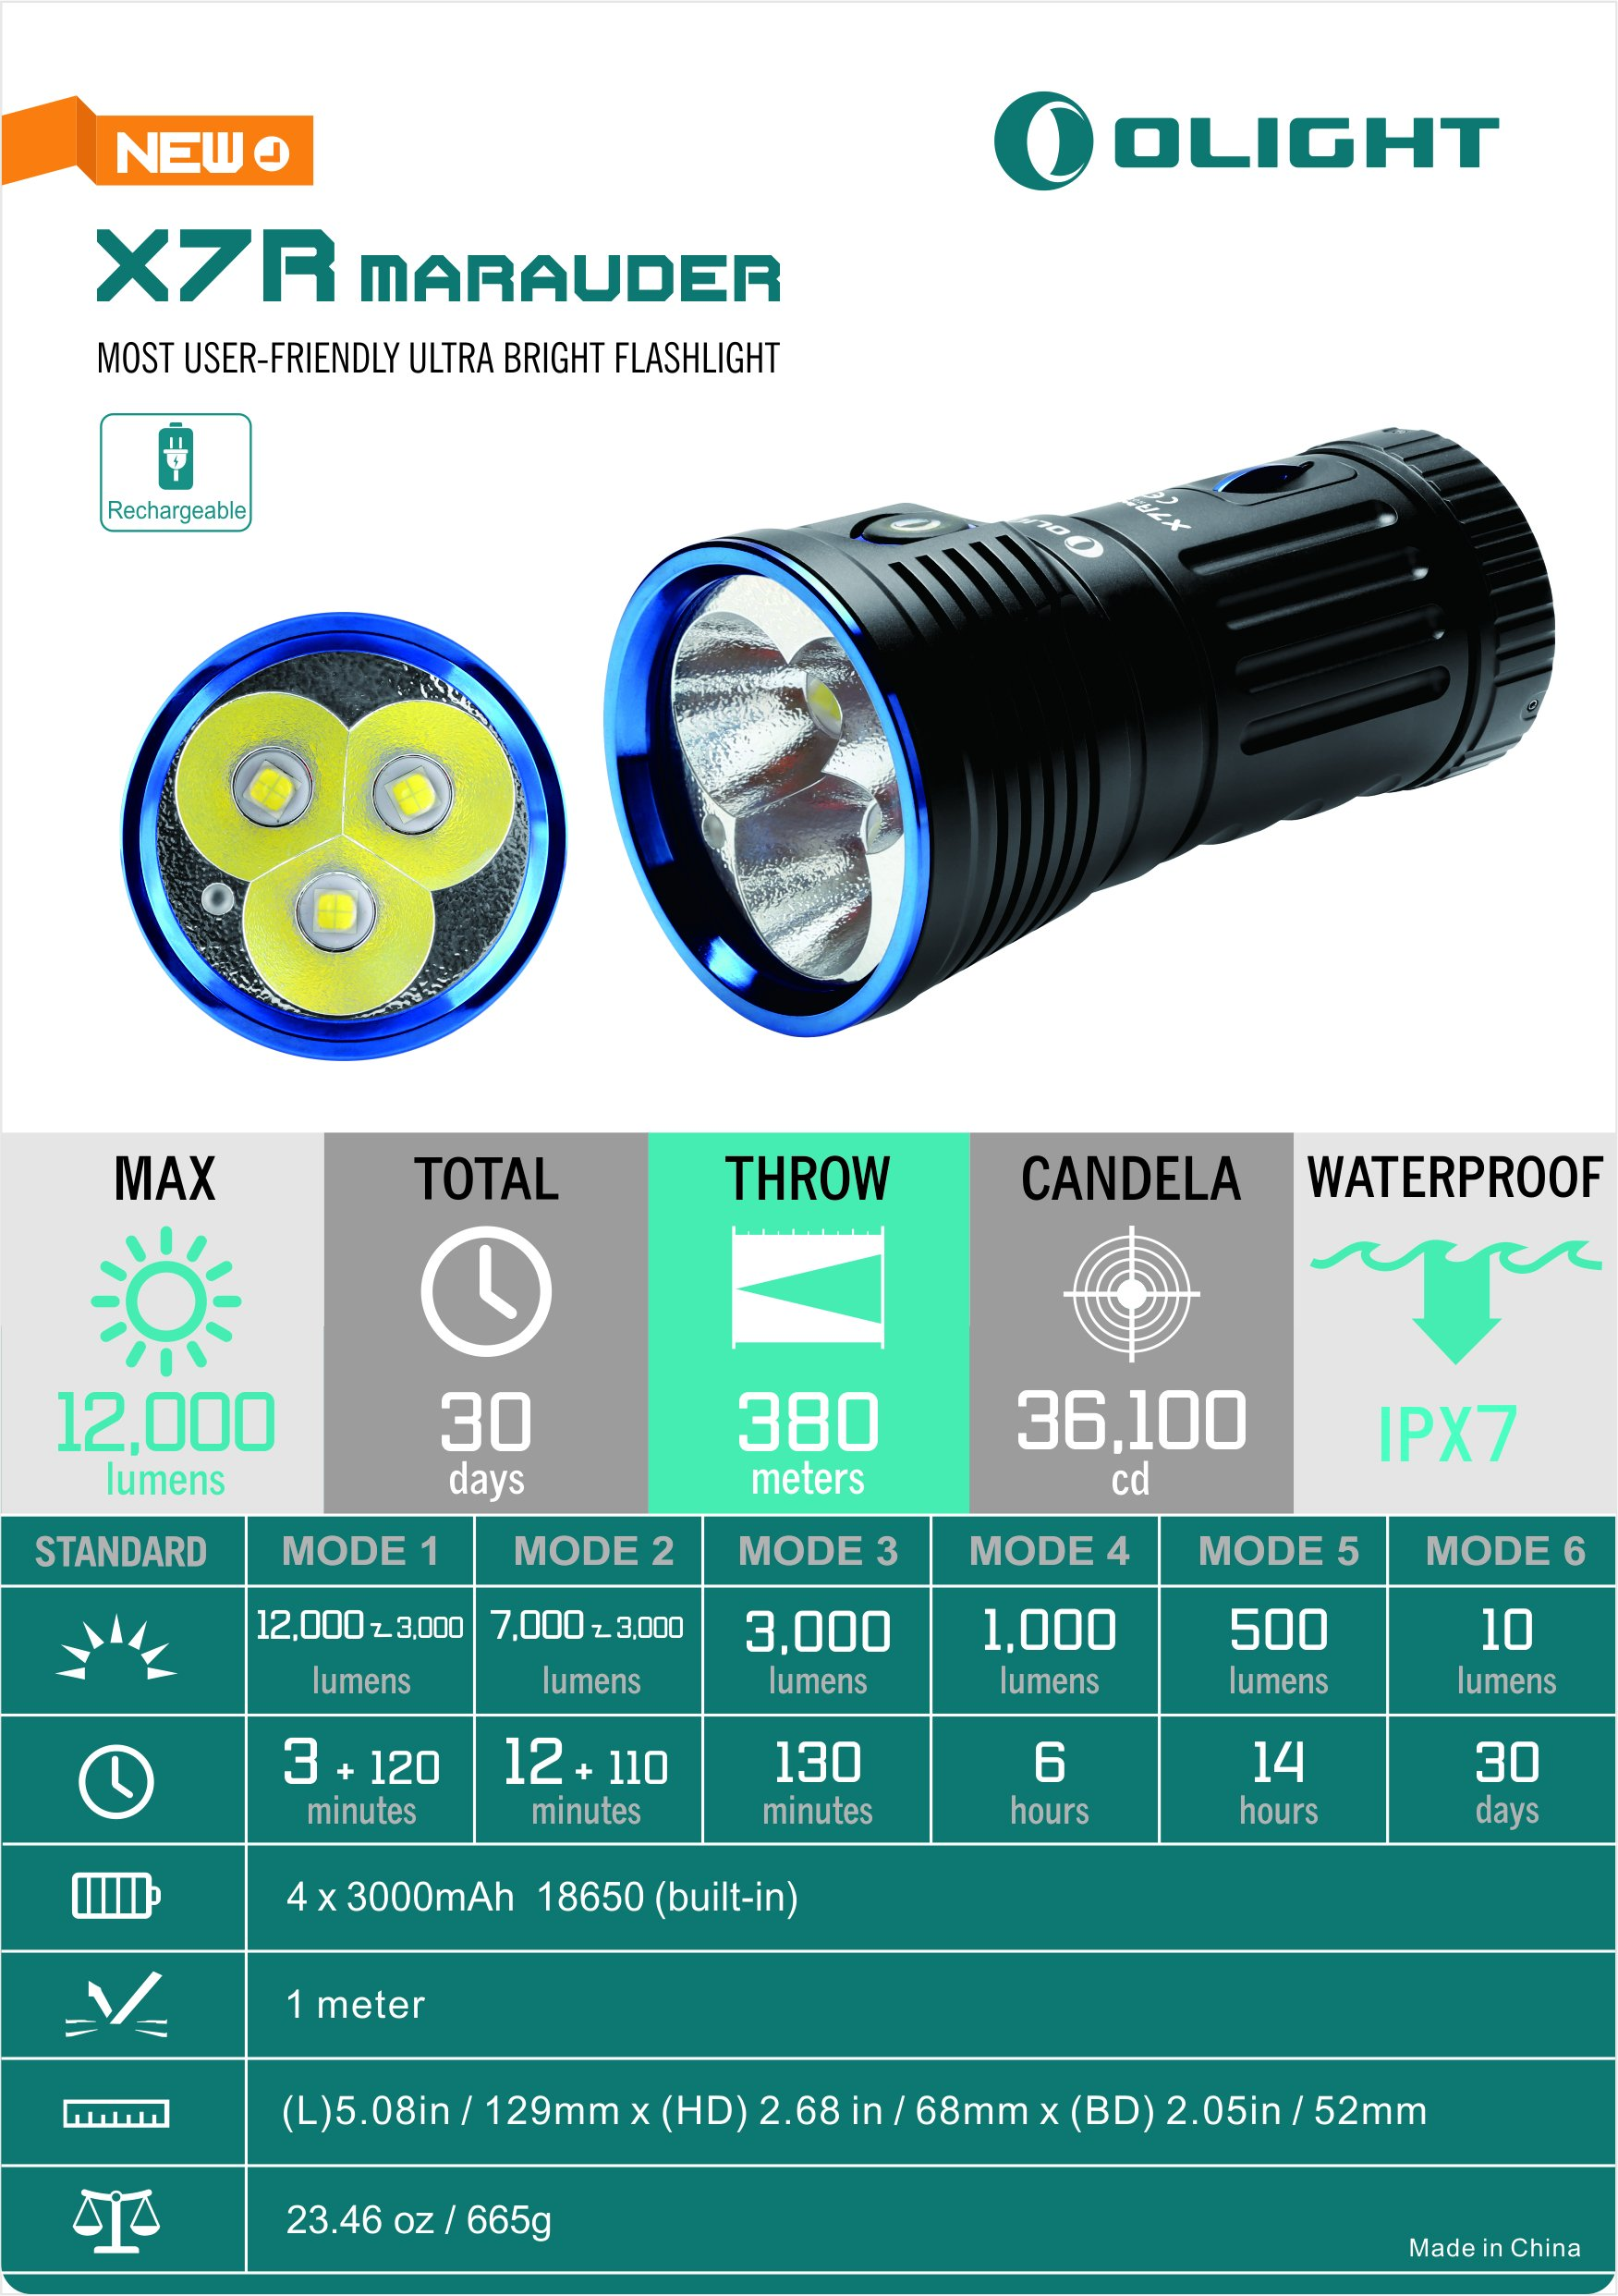 Olight X7R Marauder 12000 Lumens CREE XHP 70 LED USB Rechargeable Flashlight for Camping,Hunting,Searching,with 4 X 18650 Rechargeable Batteries (Built-in) and SKYBEN Accessory by SKYBEN (Image #8)